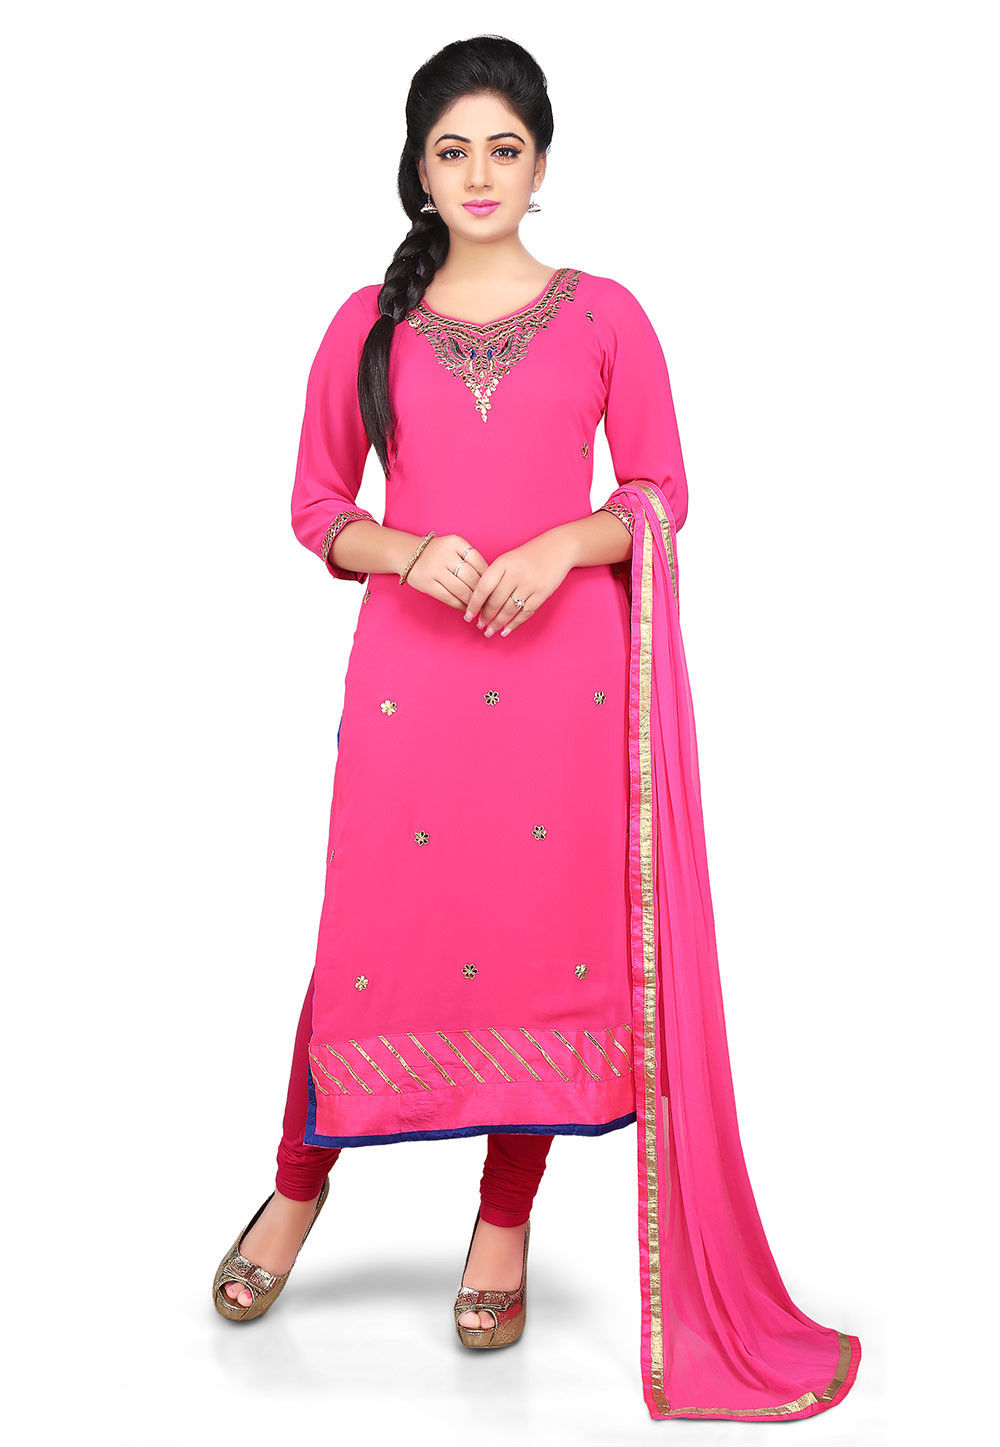 Embroidered Georgette Straight Cut Suit in Fuchsia